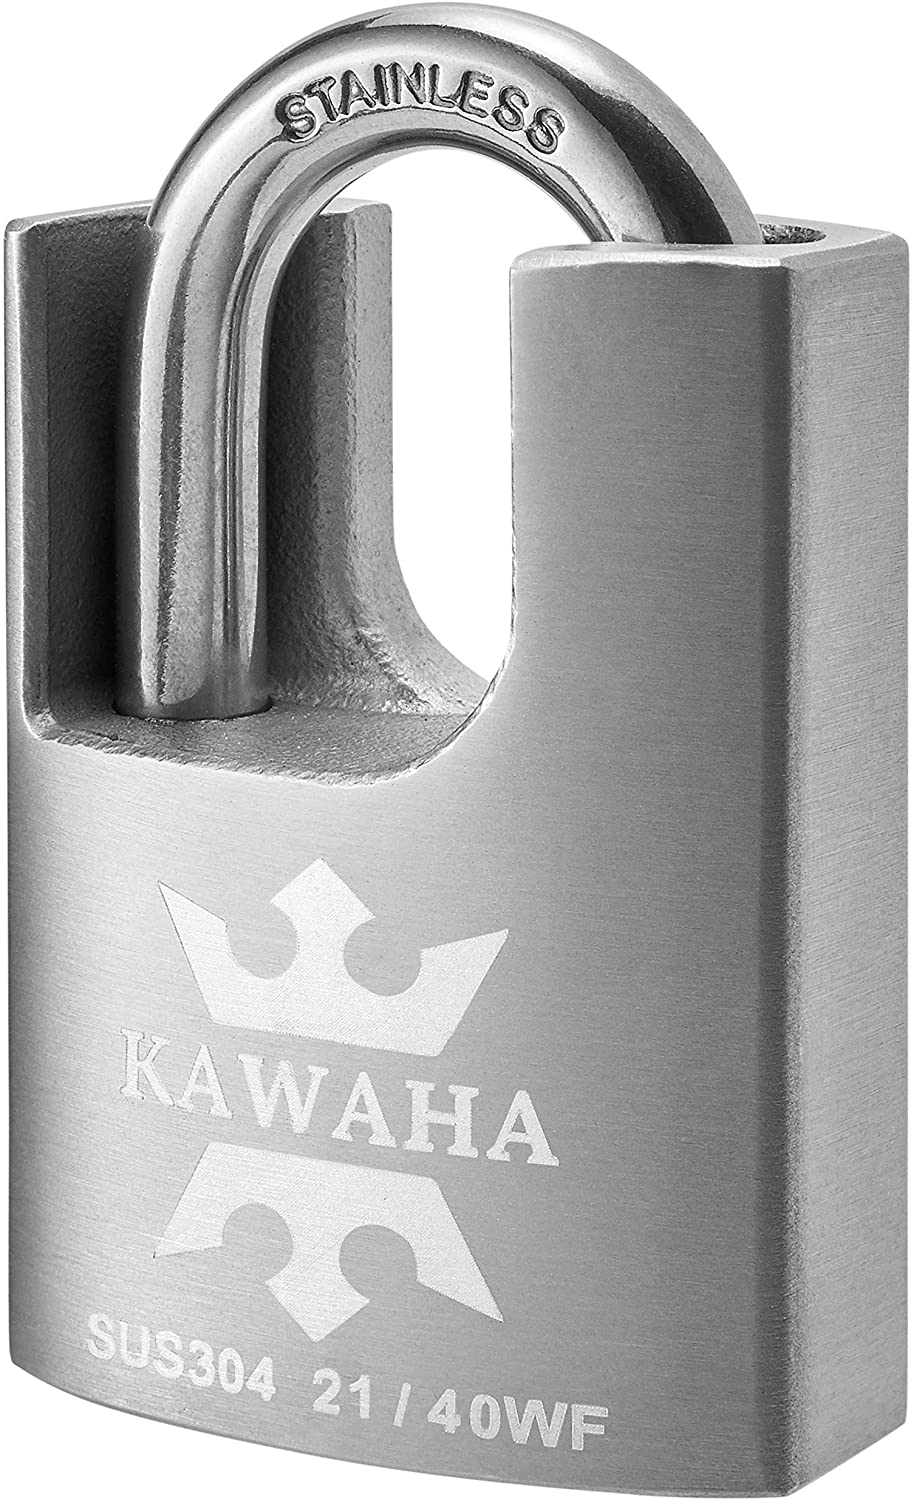 KAWAHA 1-9/16 Inch Stainless Steel Shrouded High Security Padlock with Key for Both Indoor and Outdoor use (SUS304 Stainless Steel Body & Shackle, Anti-Rust, Heavy Duty Padlock)